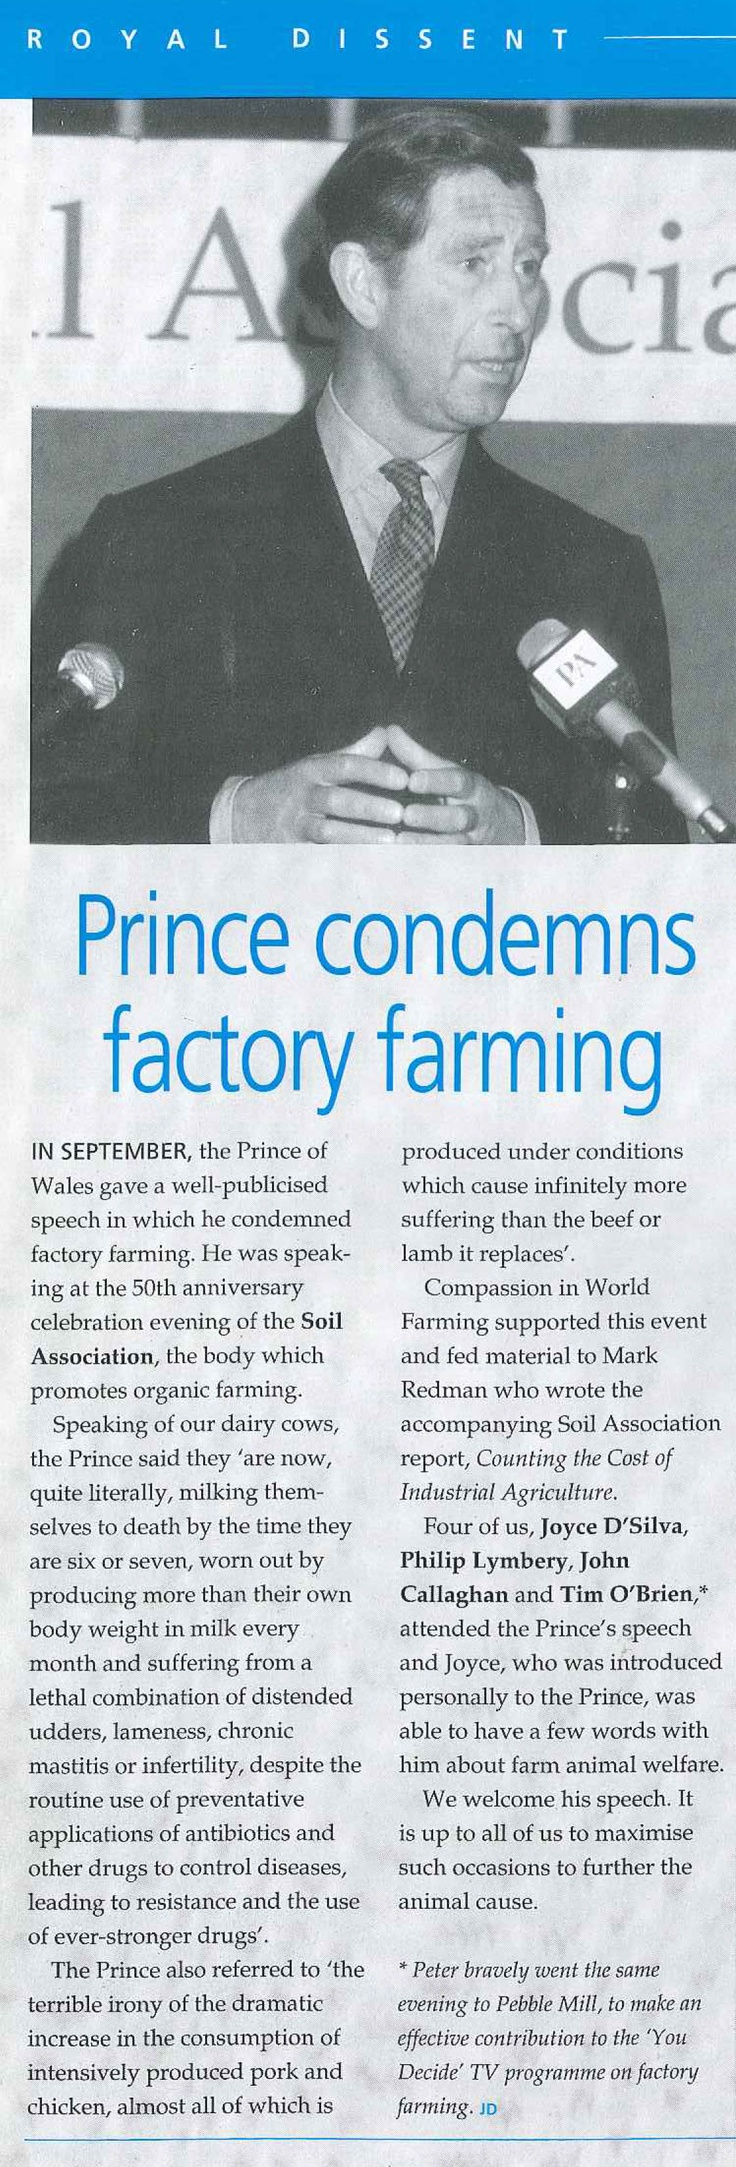 Prince Charles speaks out against factory farming, 1996.